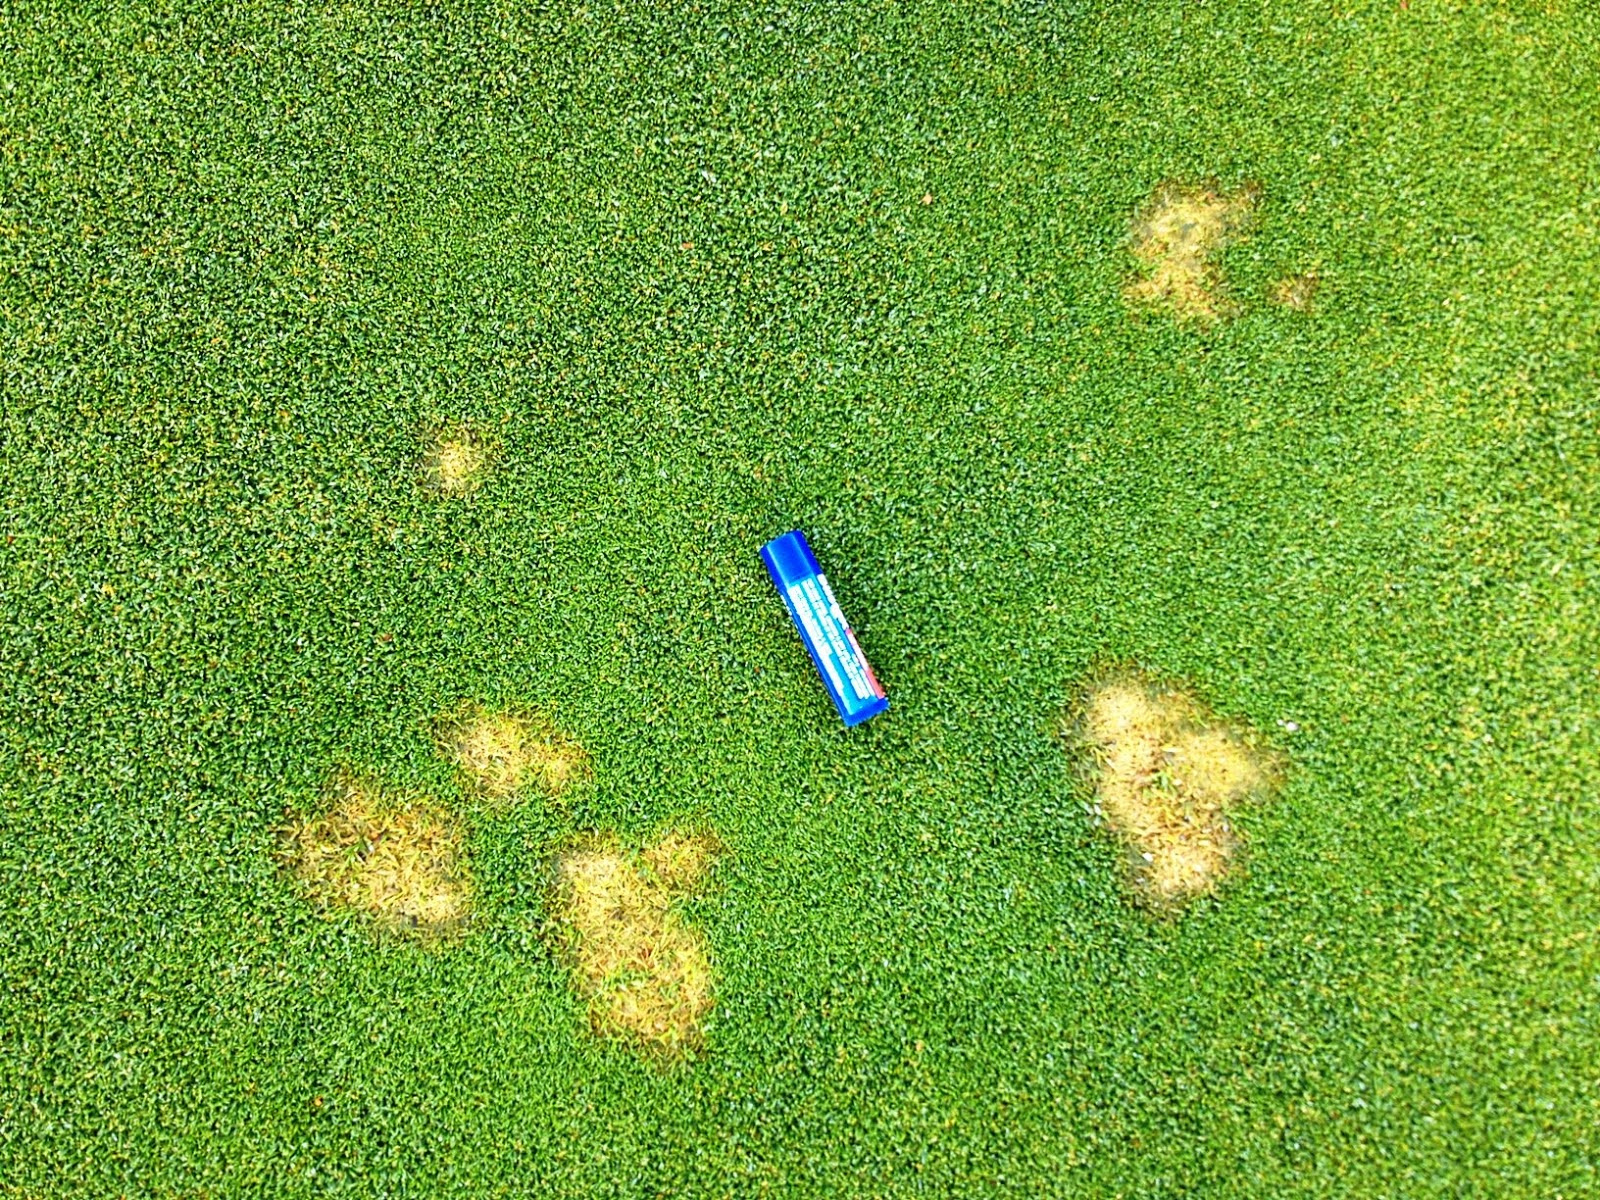 Quilchena Golf Club Turf Care: What's up with the patches ...